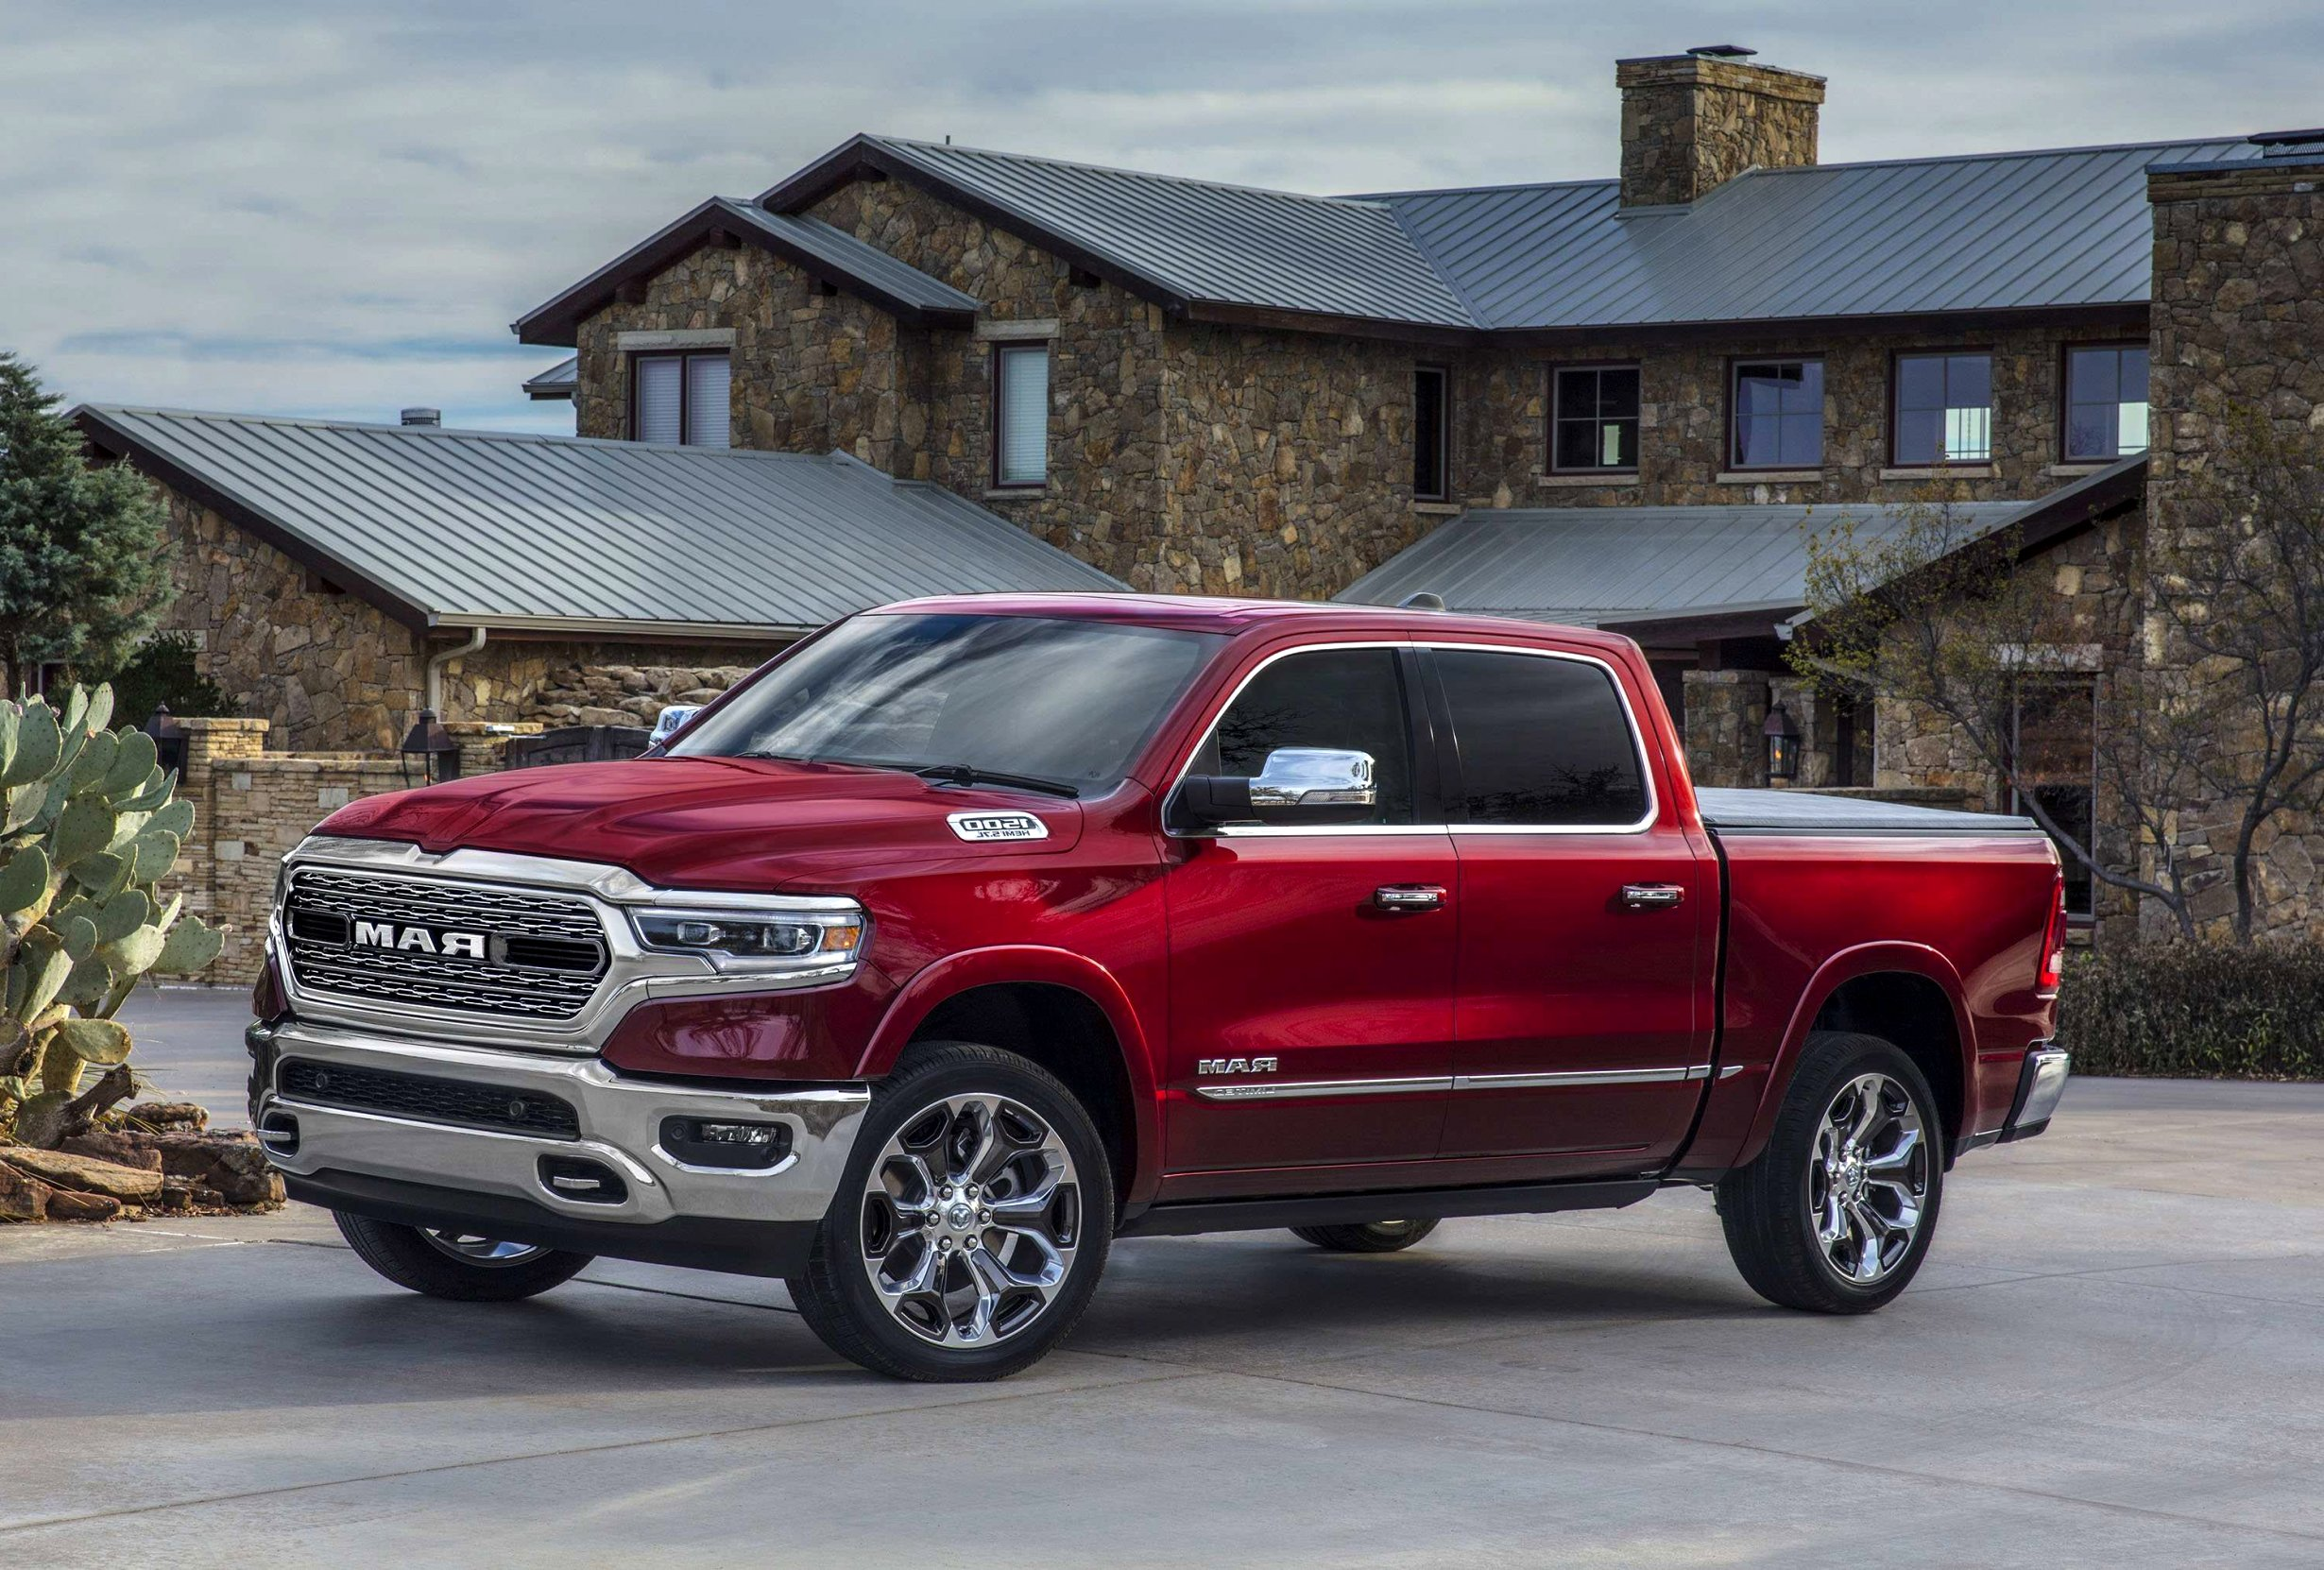 2020 dodge full size SUV Pictures